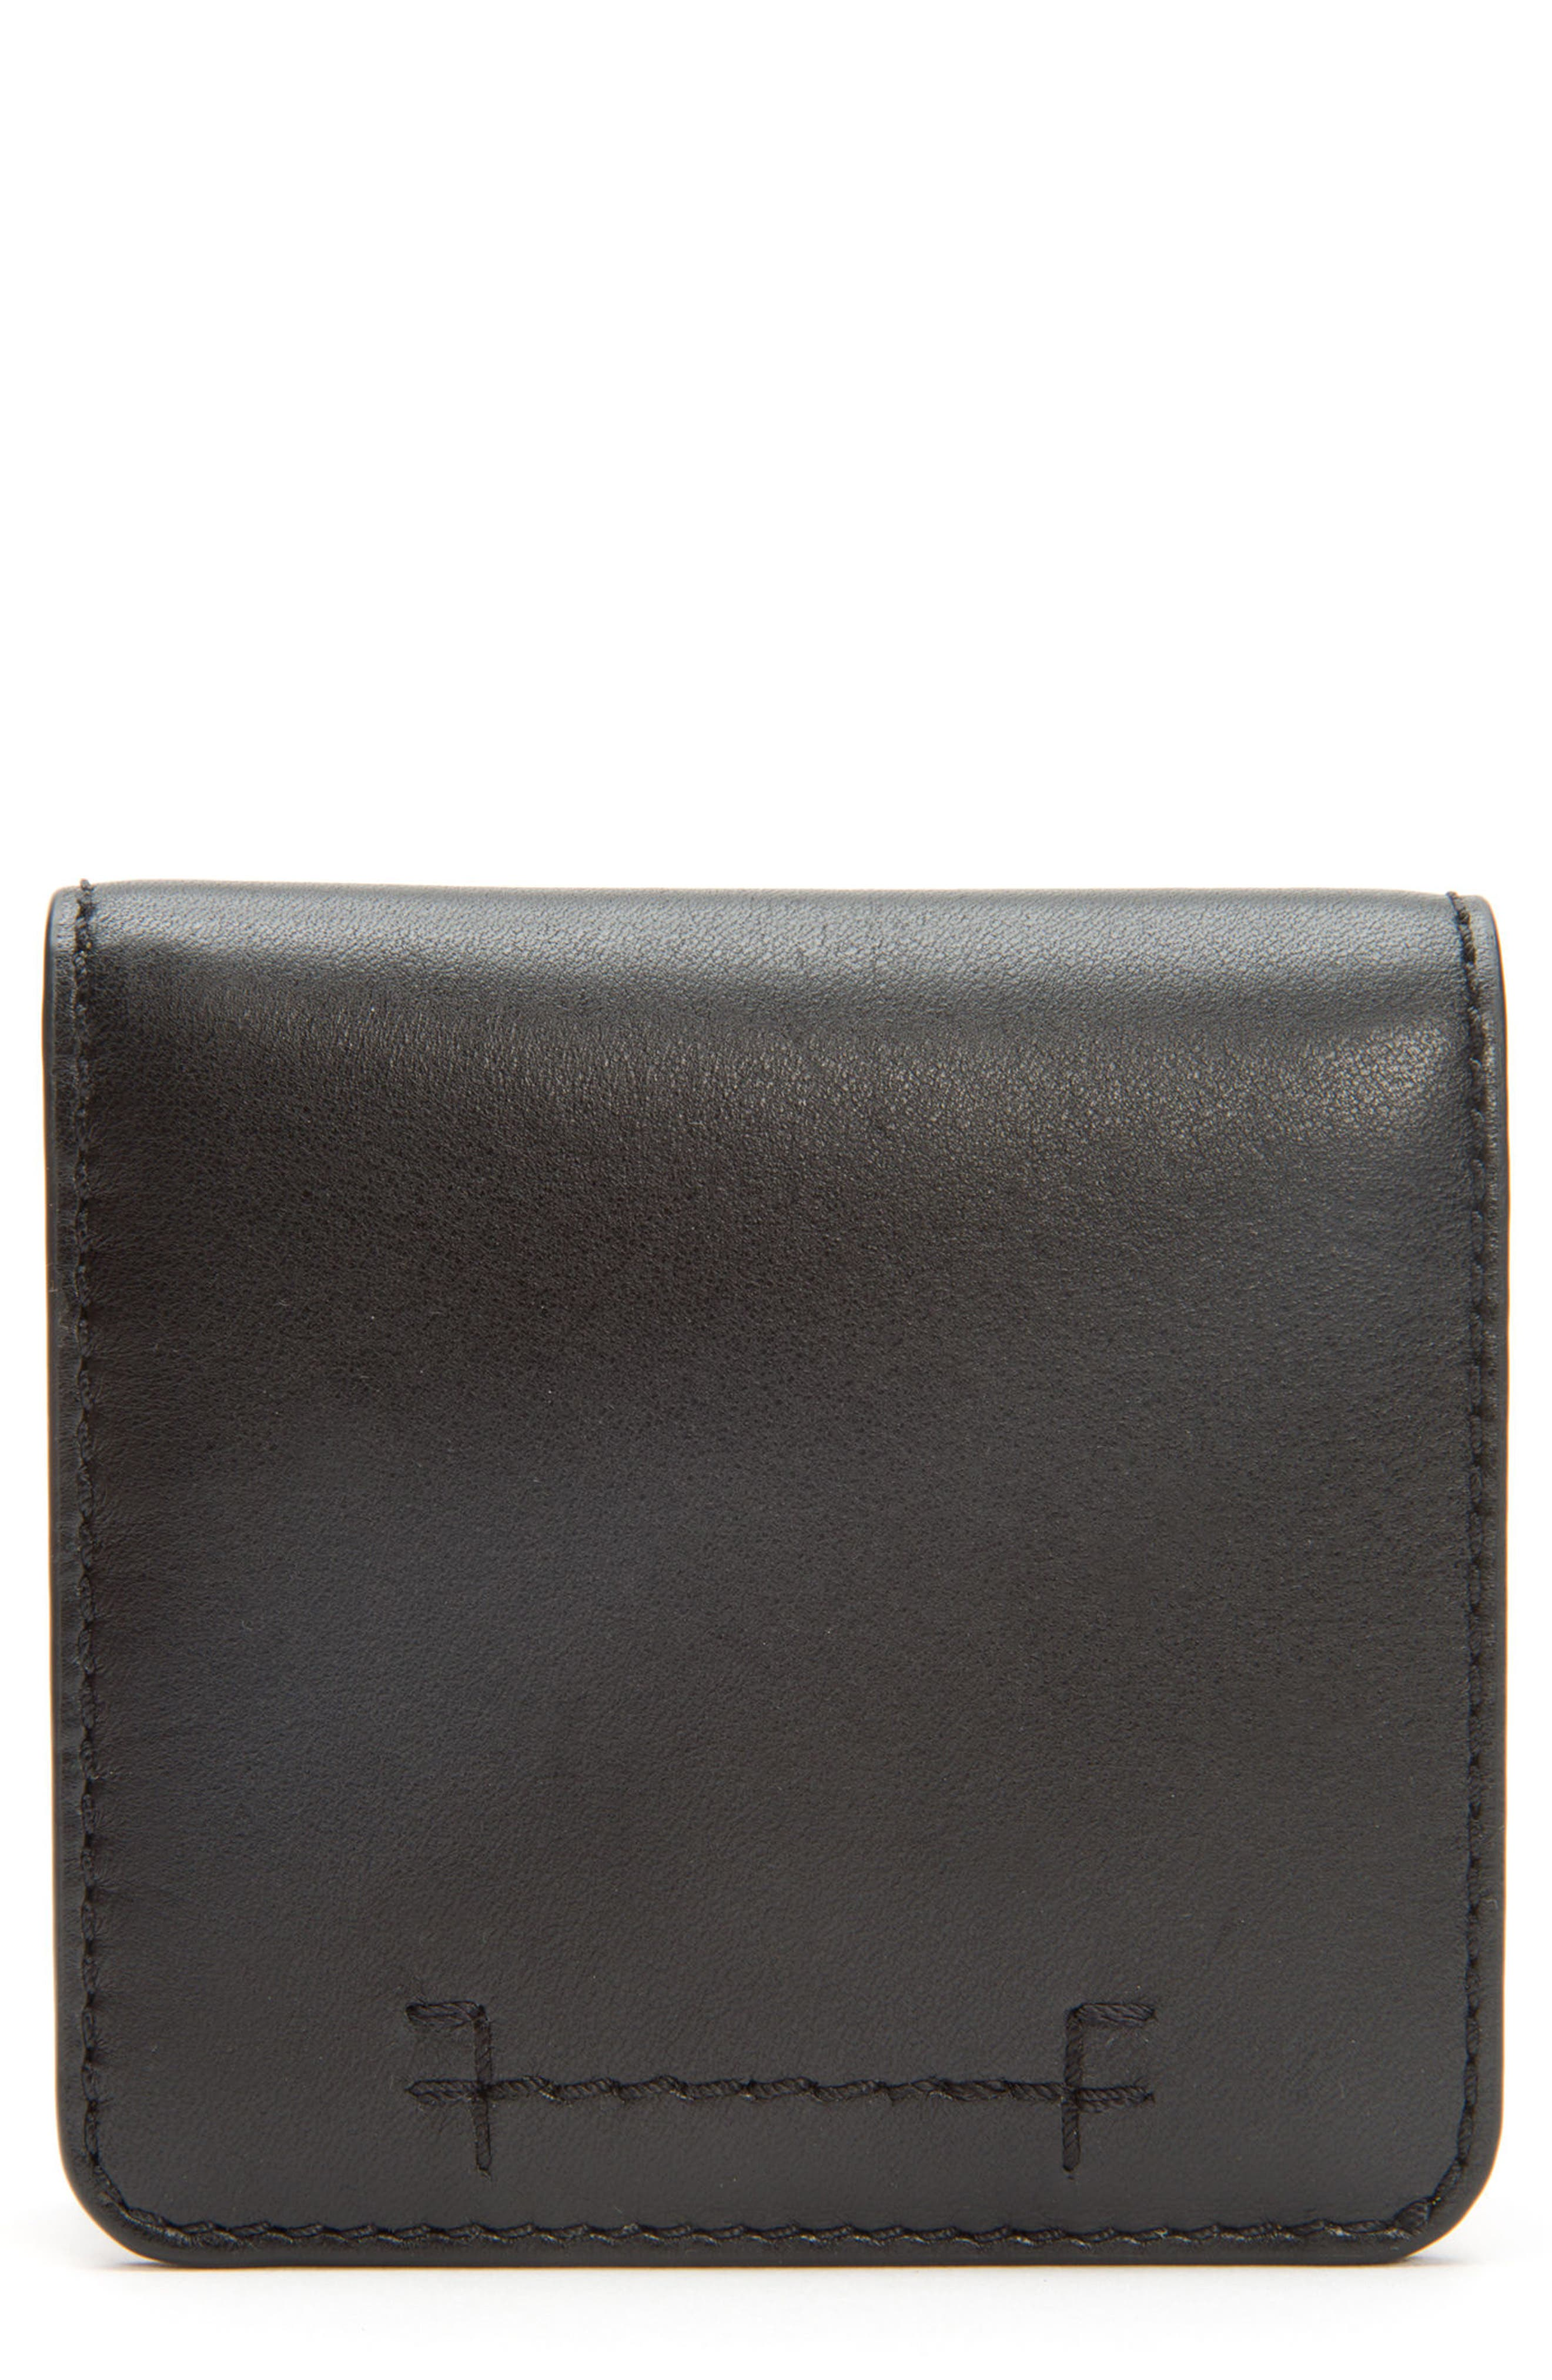 Carson Small Leather Wallet,                         Main,                         color, 001